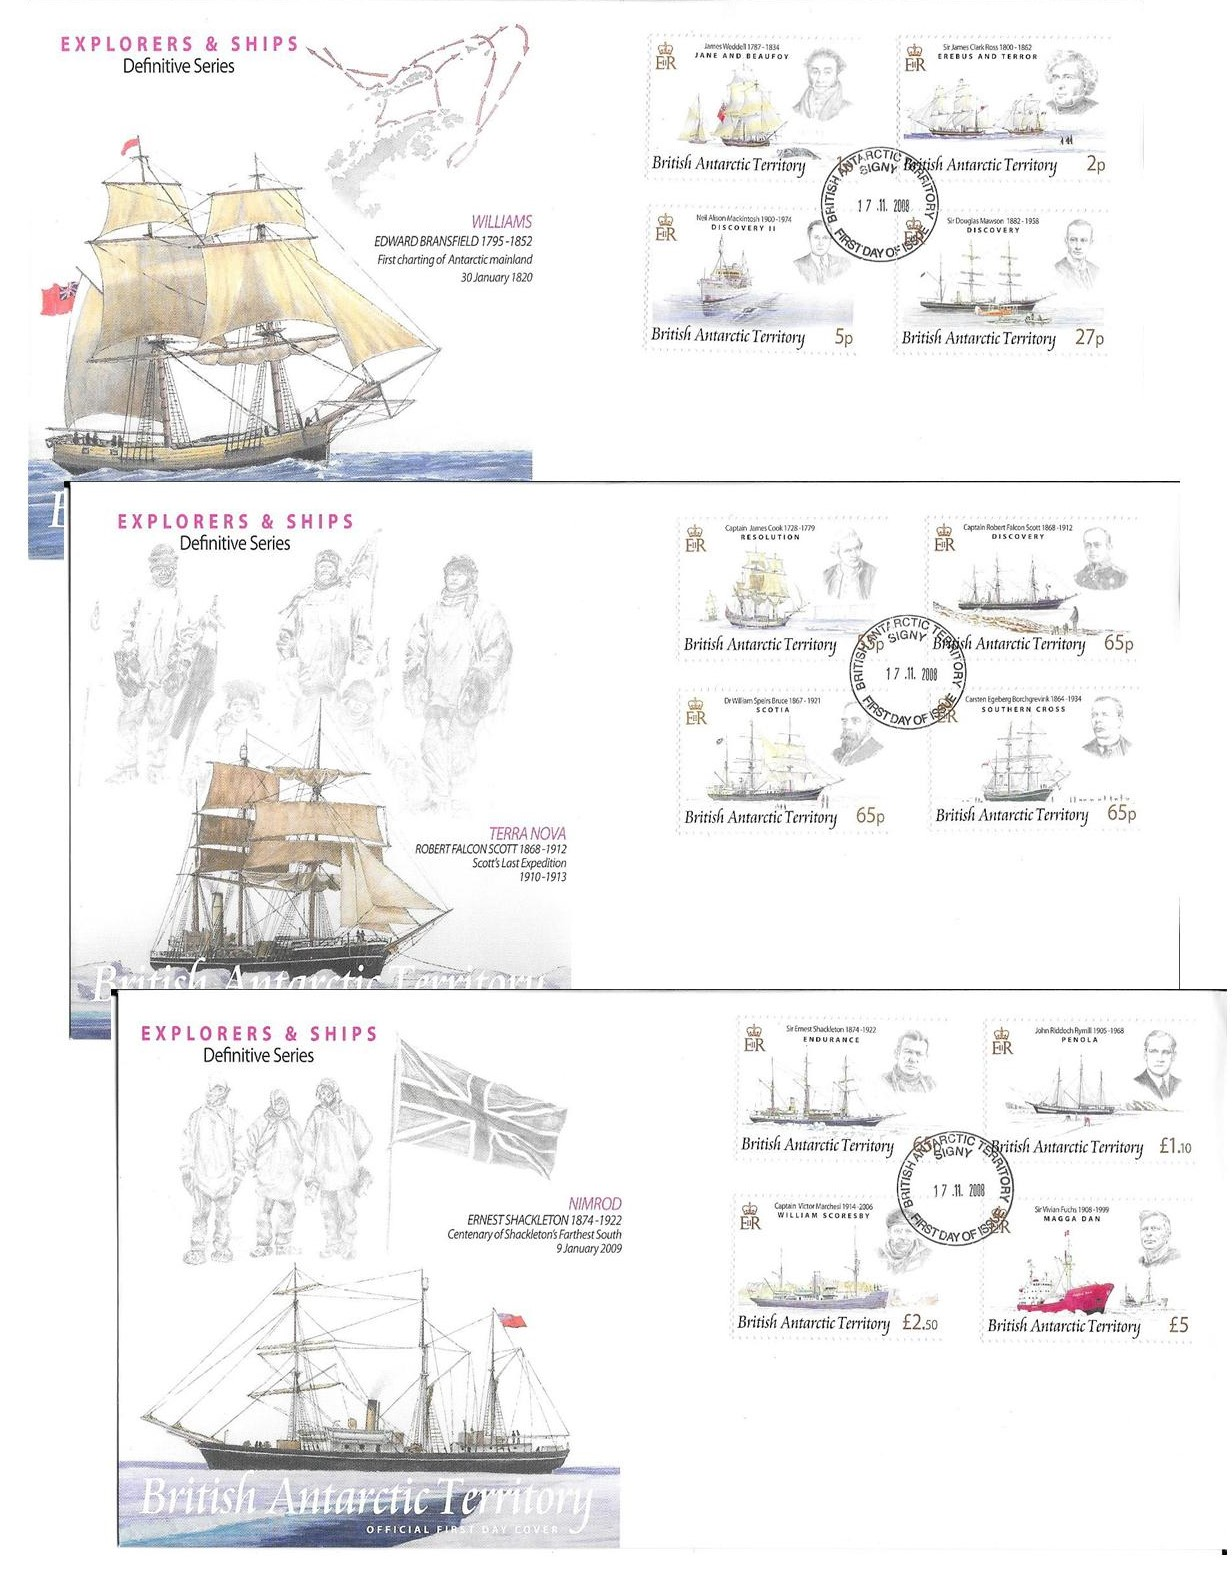 Explorers and Ships 2008 Definitive Set Covers Signy cancel